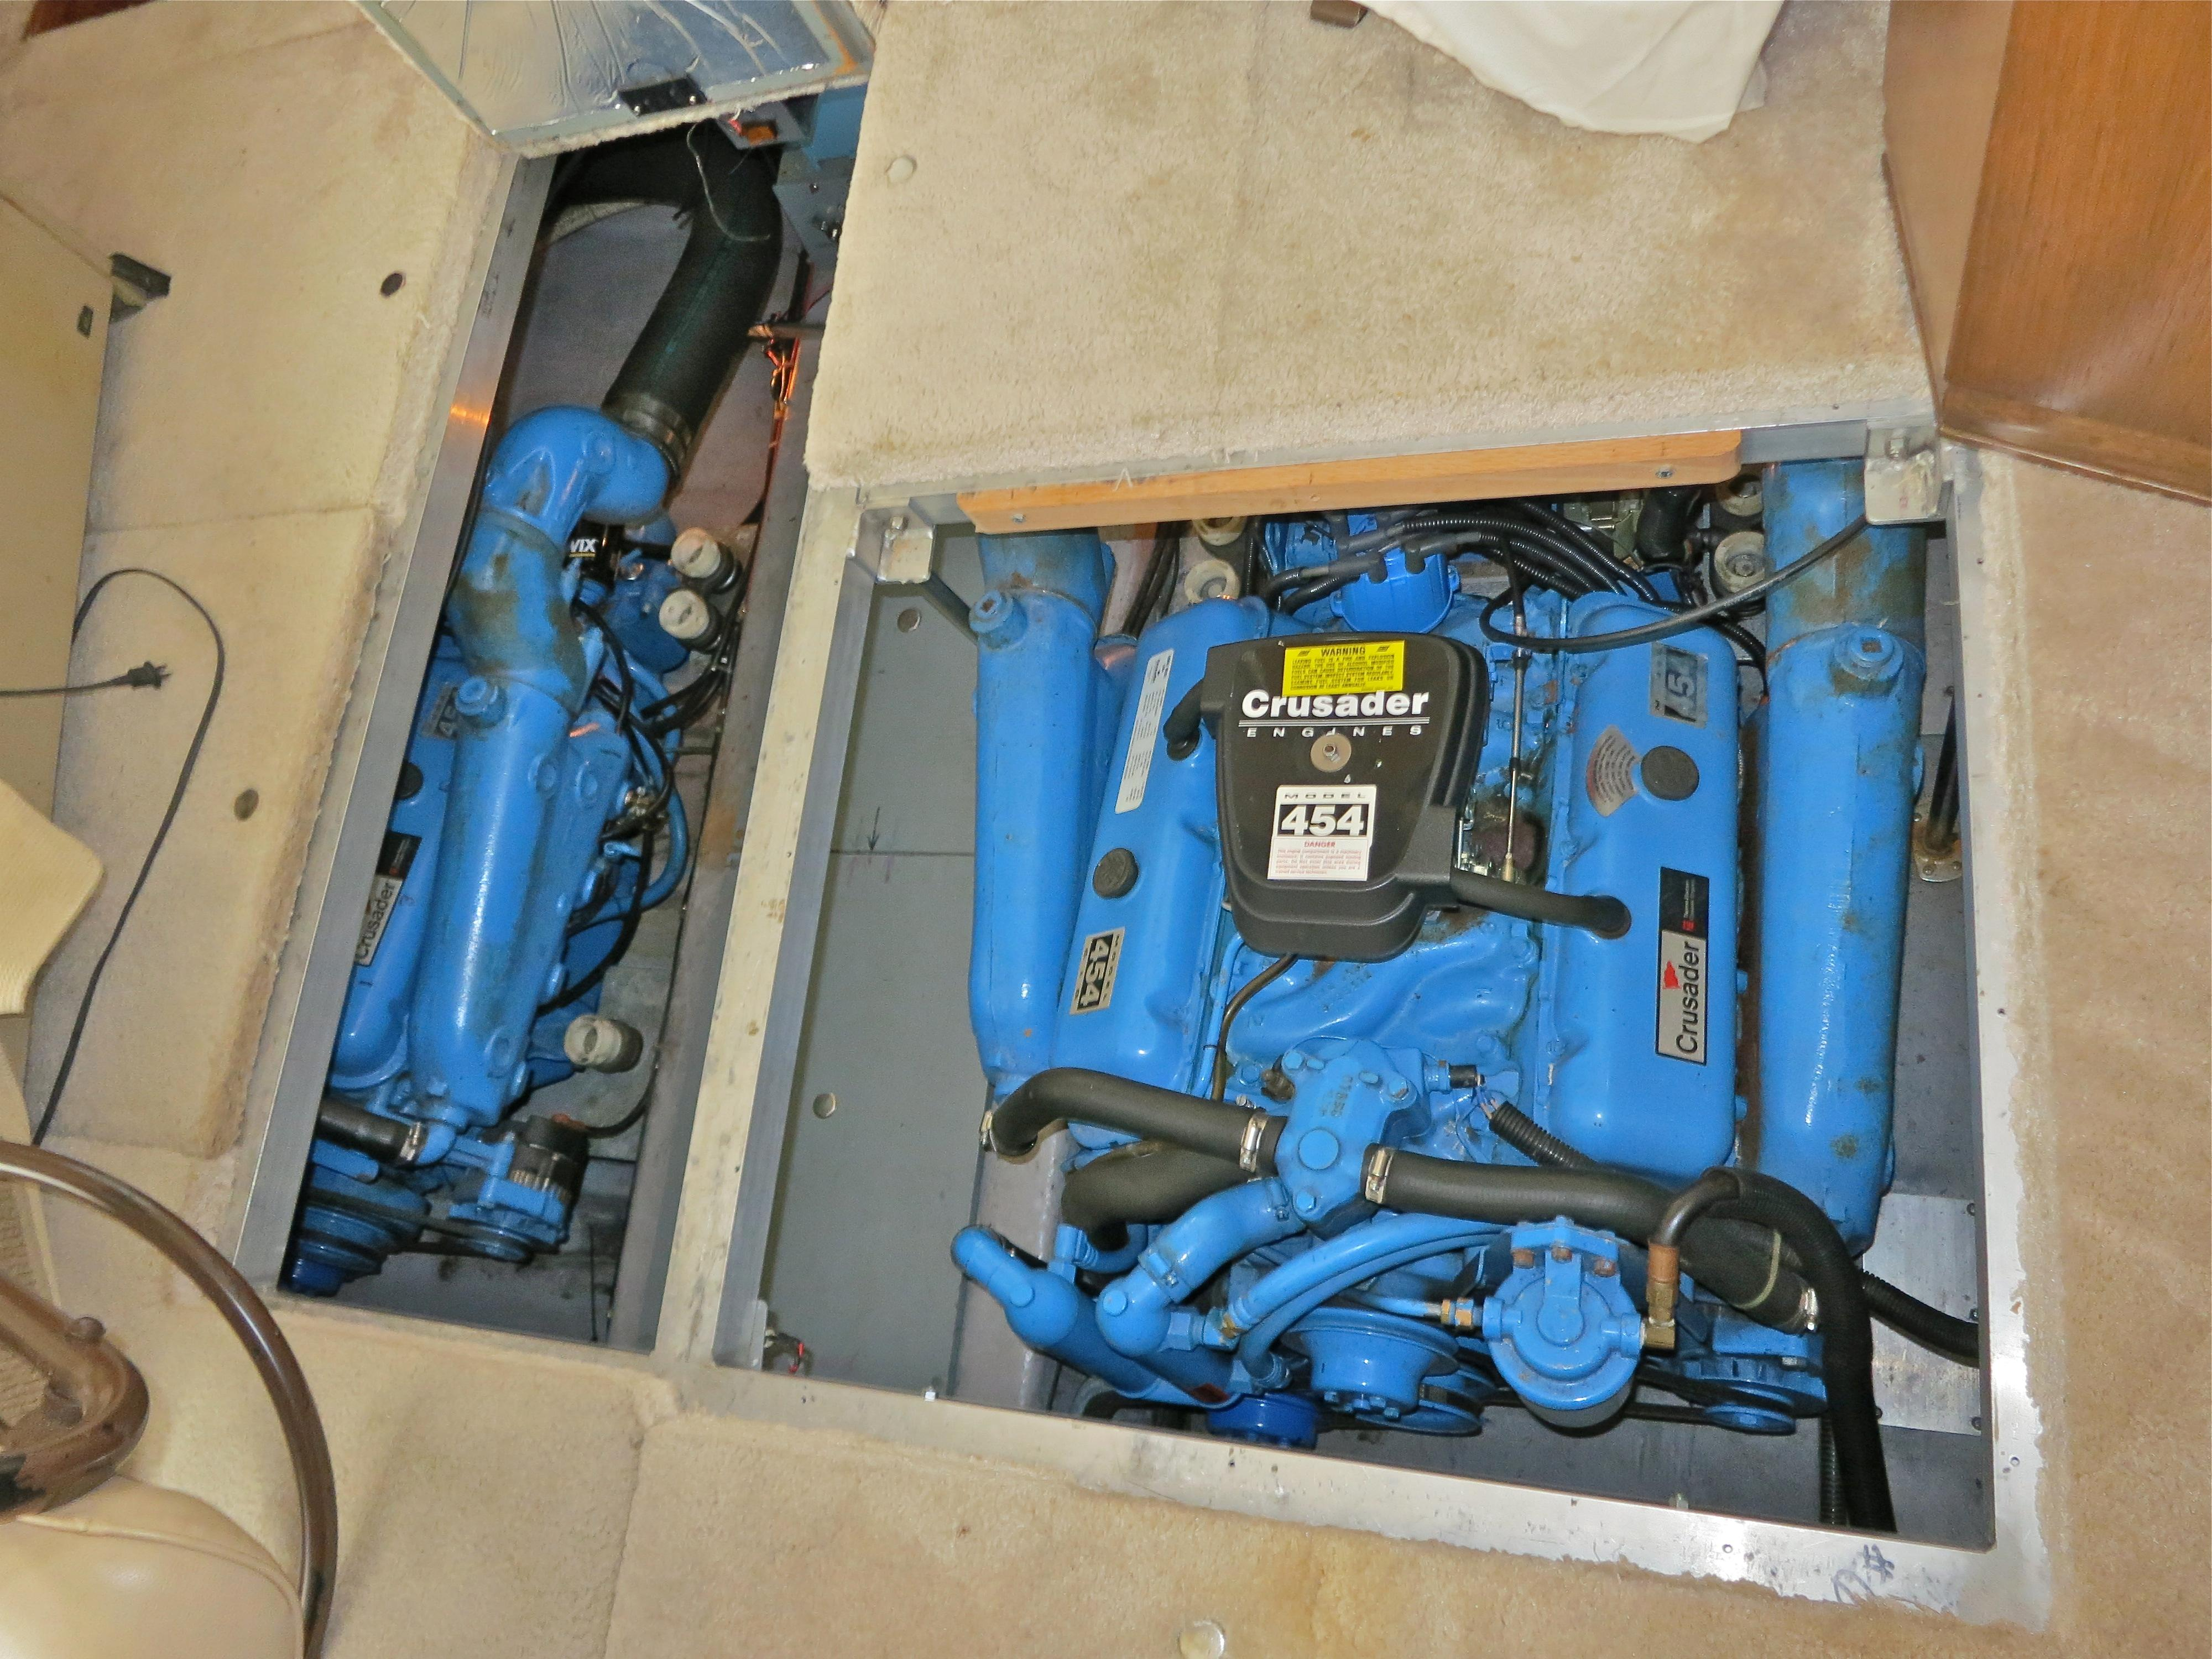 6175168_20170415145524756_3_XLARGE&w=924&h=693&t=1492297103000 1991 carver 33 350 aft cabin power boat for sale Residential Electrical Wiring Diagrams at readyjetset.co